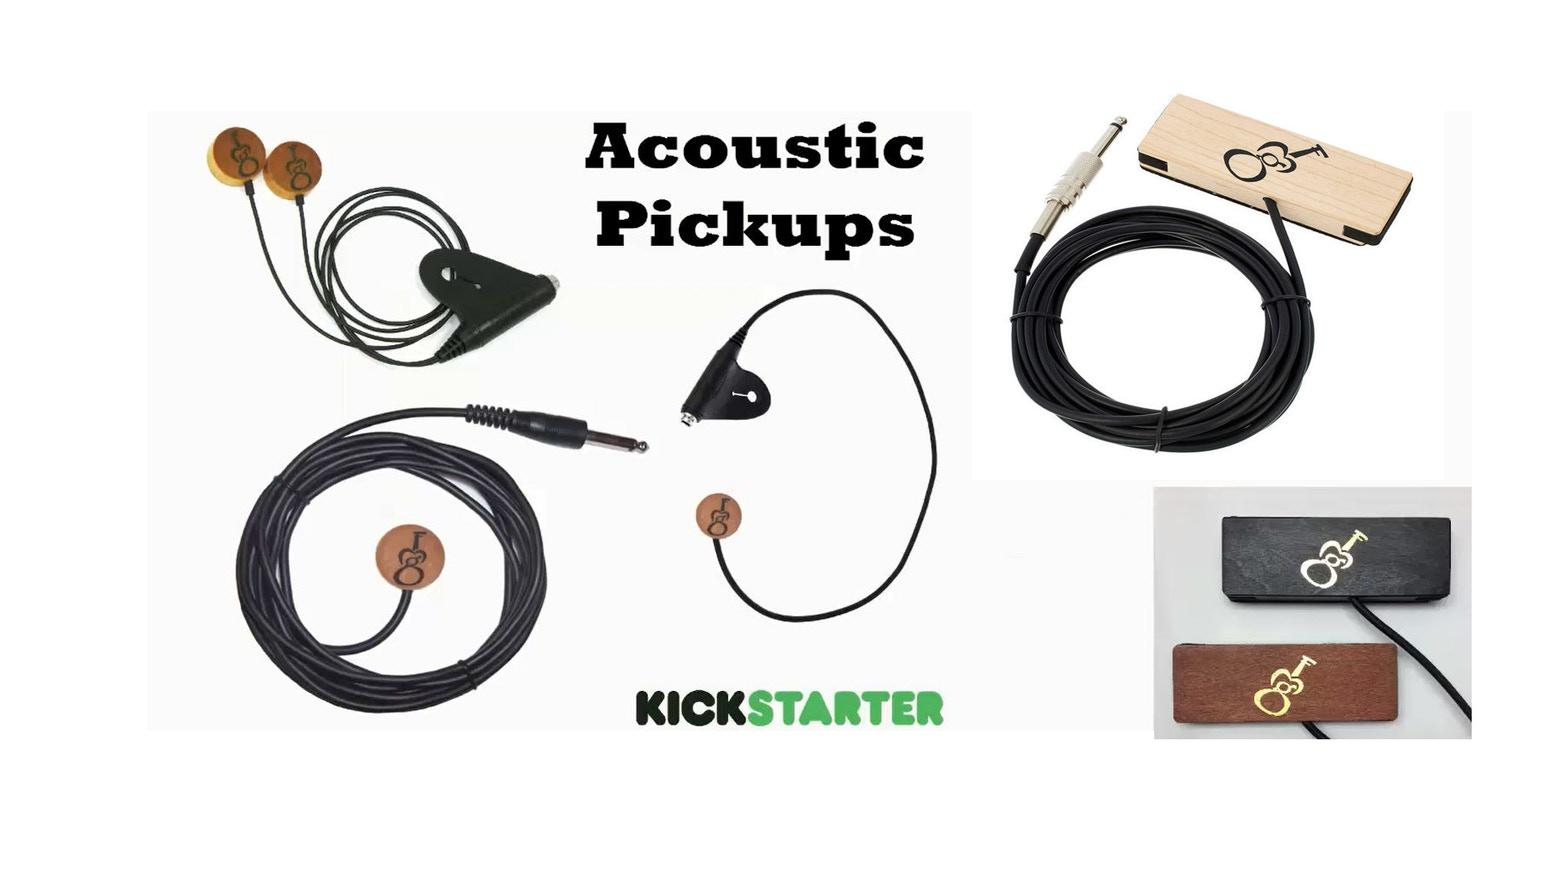 gmf acoustic pickups for guitars and stringed instruments by gmf music kickstarter. Black Bedroom Furniture Sets. Home Design Ideas